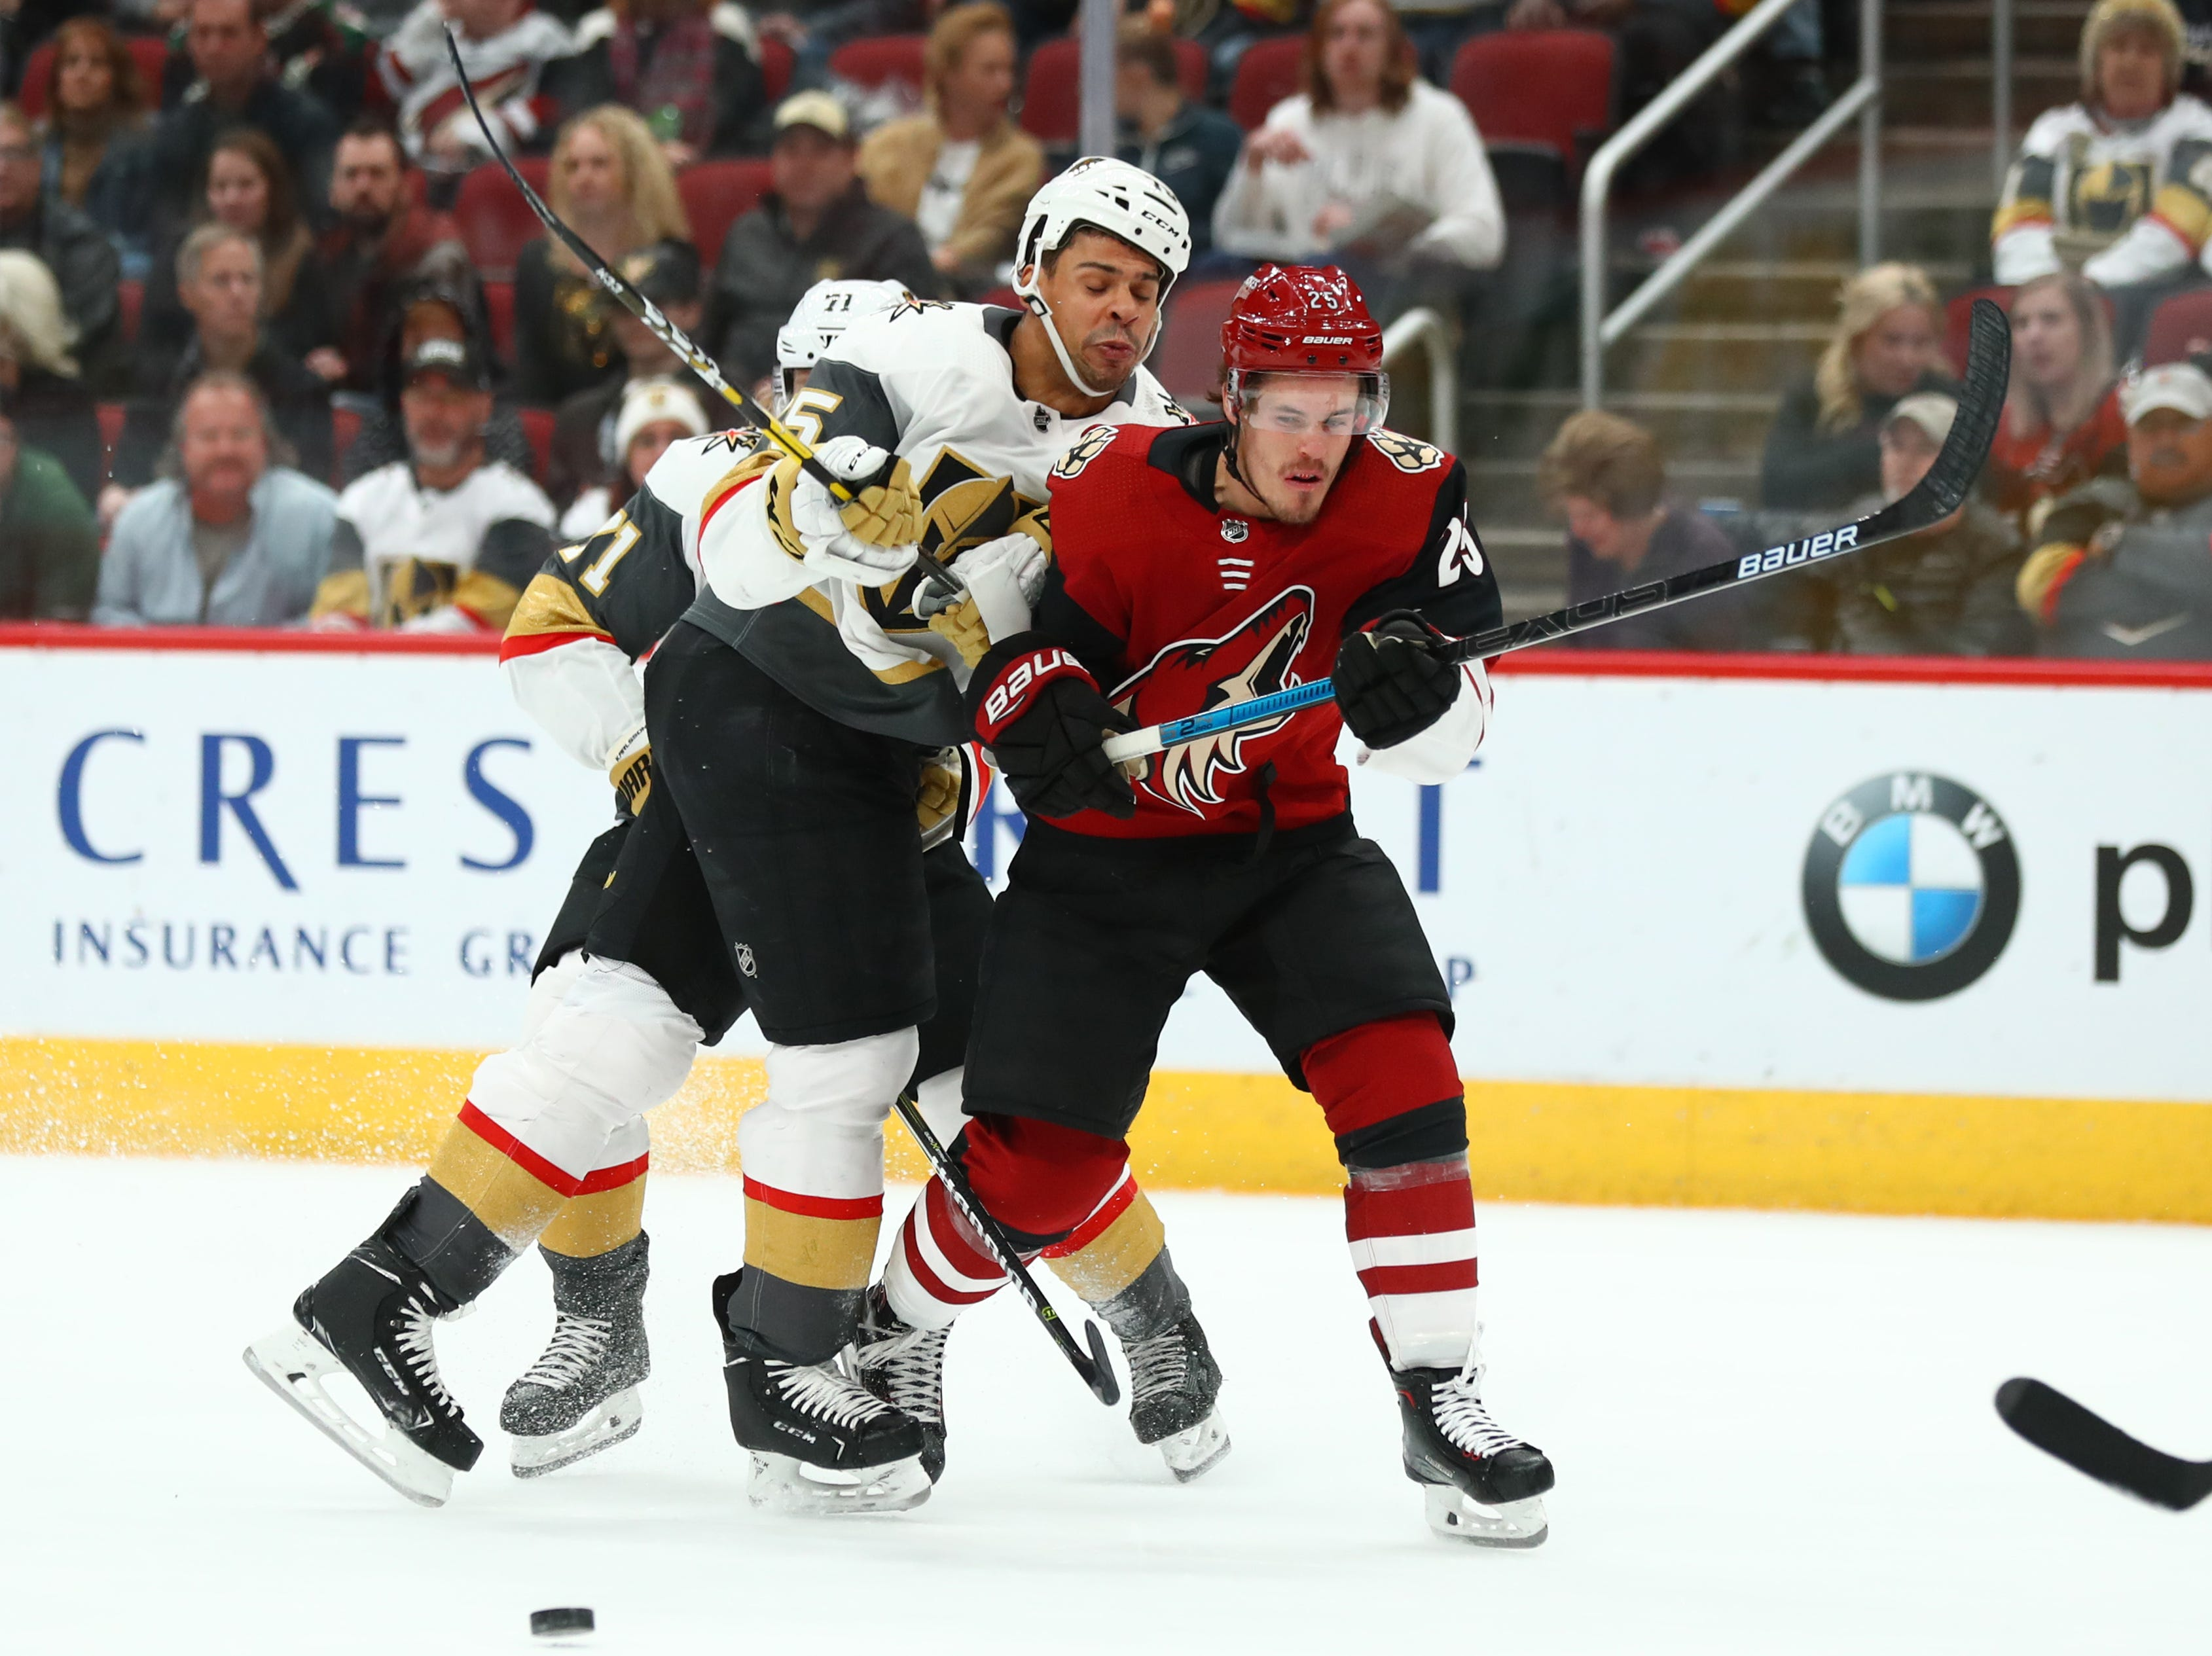 Dec 30, 2018; Glendale, AZ, USA; Arizona Coyotes center Nick Cousins (right) collides with Vegas Golden Knights right wing Ryan Reaves in the first period at Gila River Arena. Mandatory Credit: Mark J. Rebilas-USA TODAY Sports